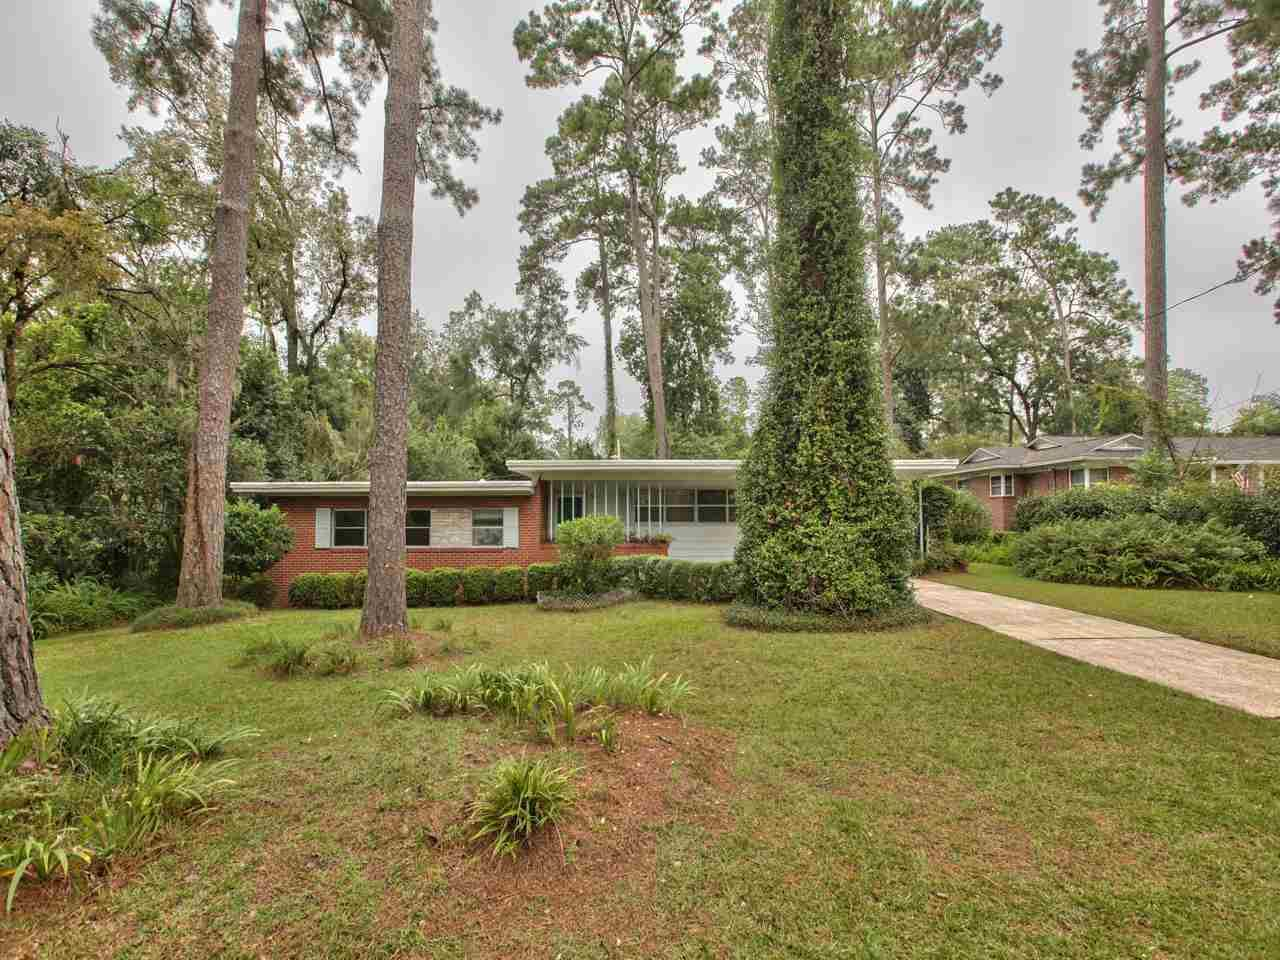 Photo of 1118 Camellia Drive, TALLAHASSEE, FL 32301 (MLS # 324491)